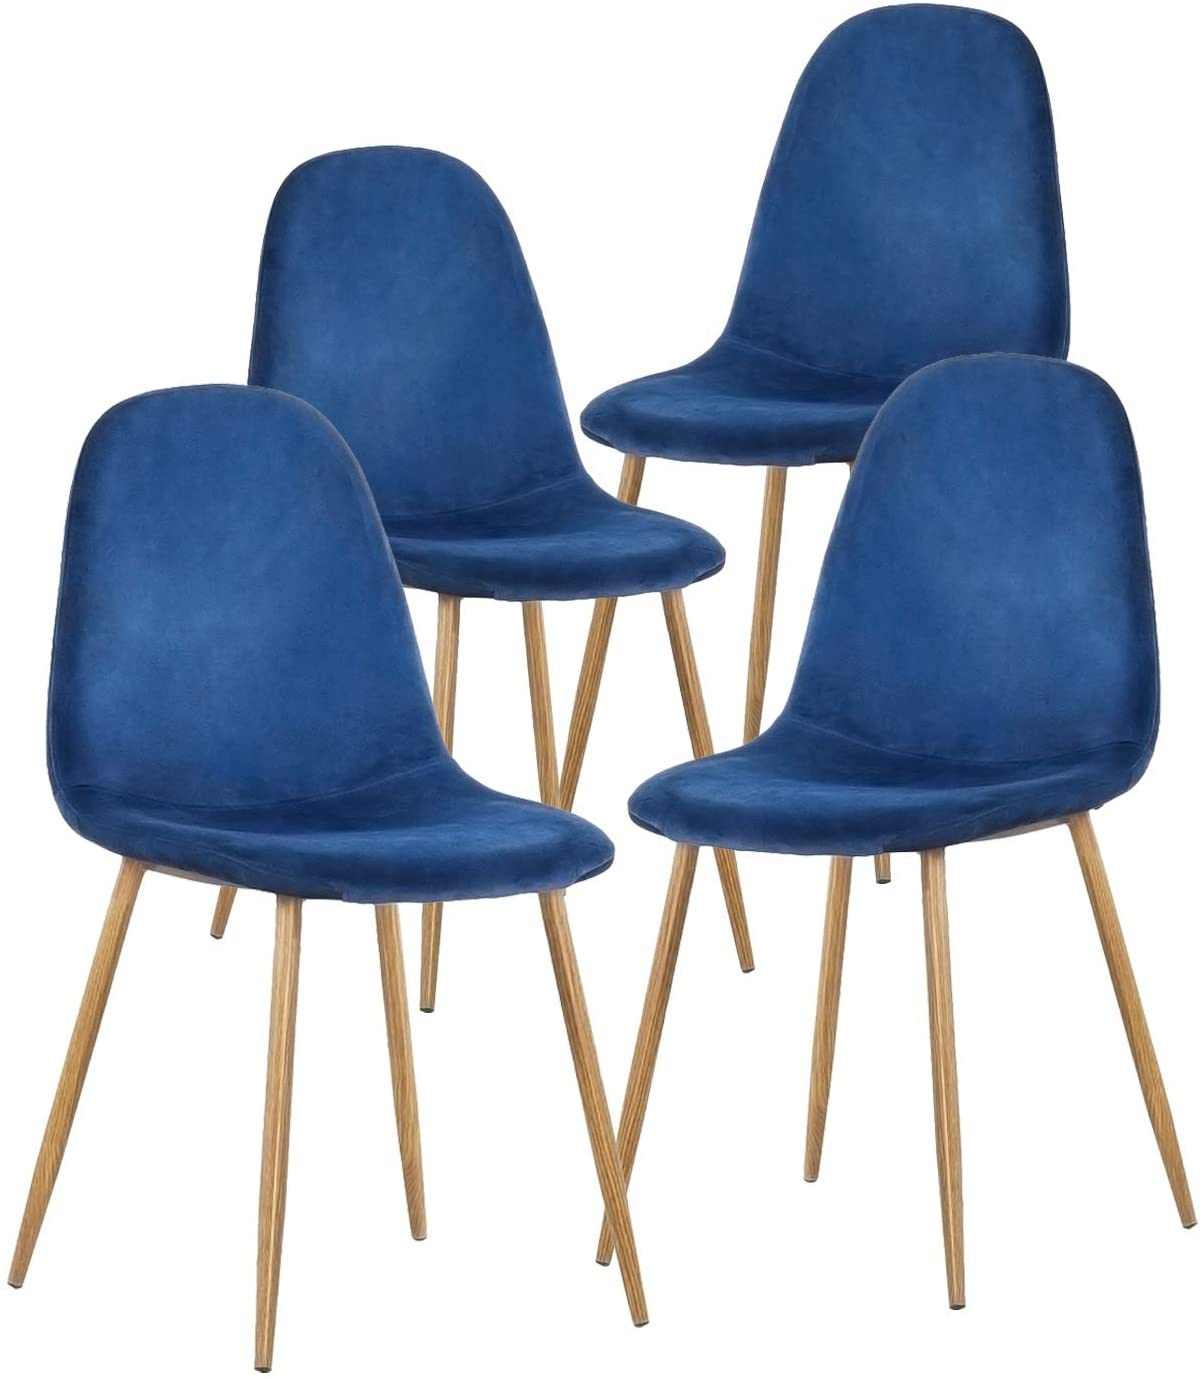 Amazon Com Greenforest Dining Chairs For Kitchen Mid Century Modern Side Chairs Velvet Upholstered Dining Chair With Metal Legs Set Of 4 Blue Furniture Decor